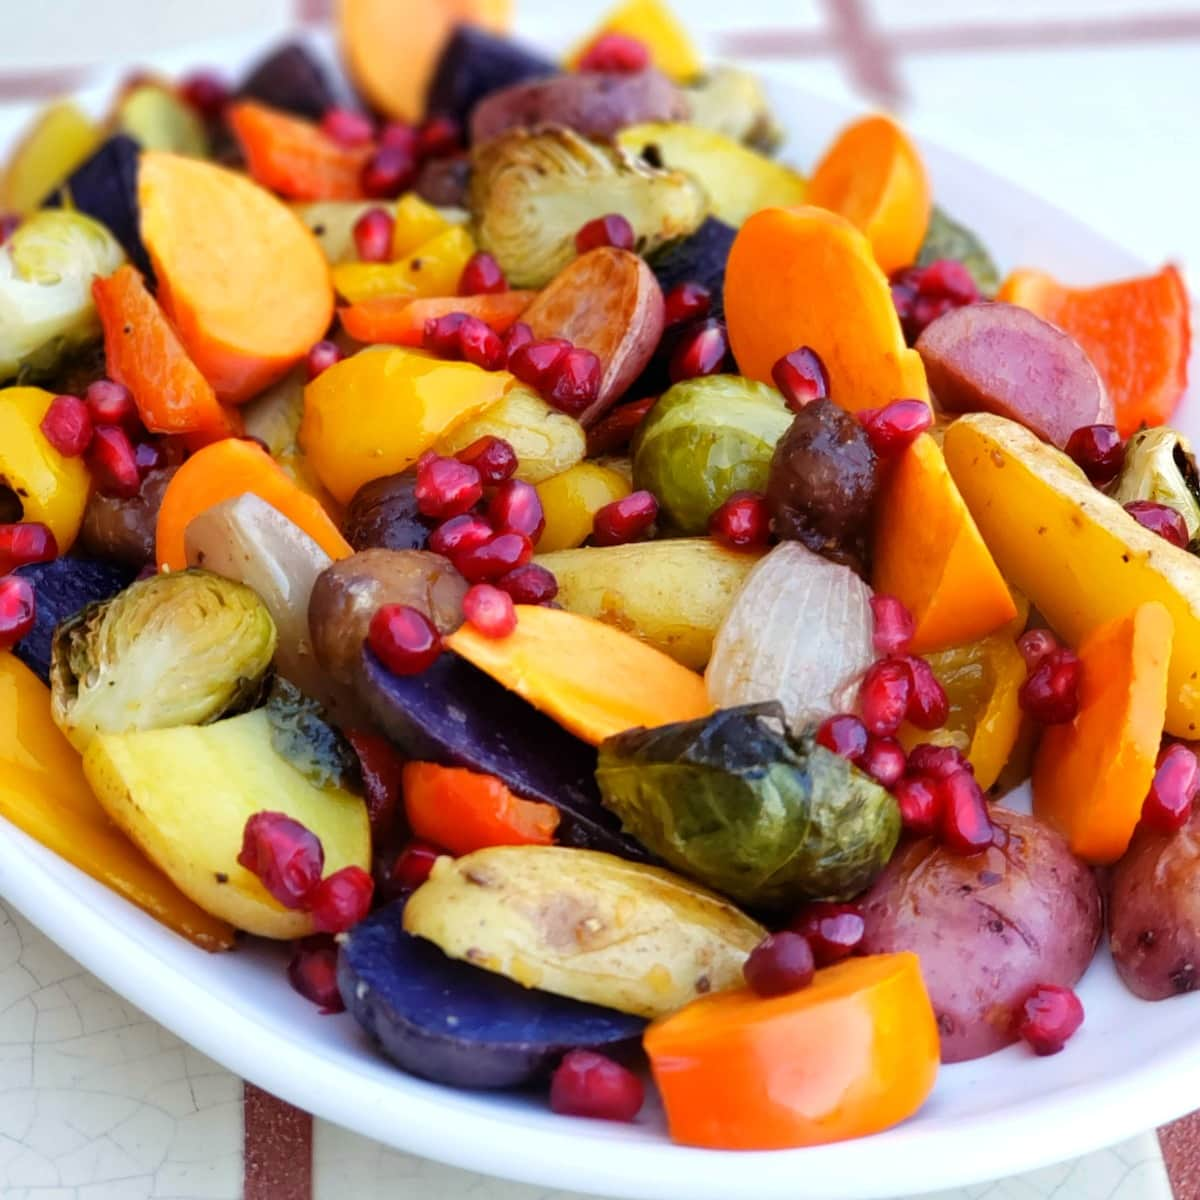 Roasted Rainbow Vegetables take the simplest, most delicious, seasonal vegetables and roast them quickly to perfection, for a colorful, healthy side dish or vegan main dish.